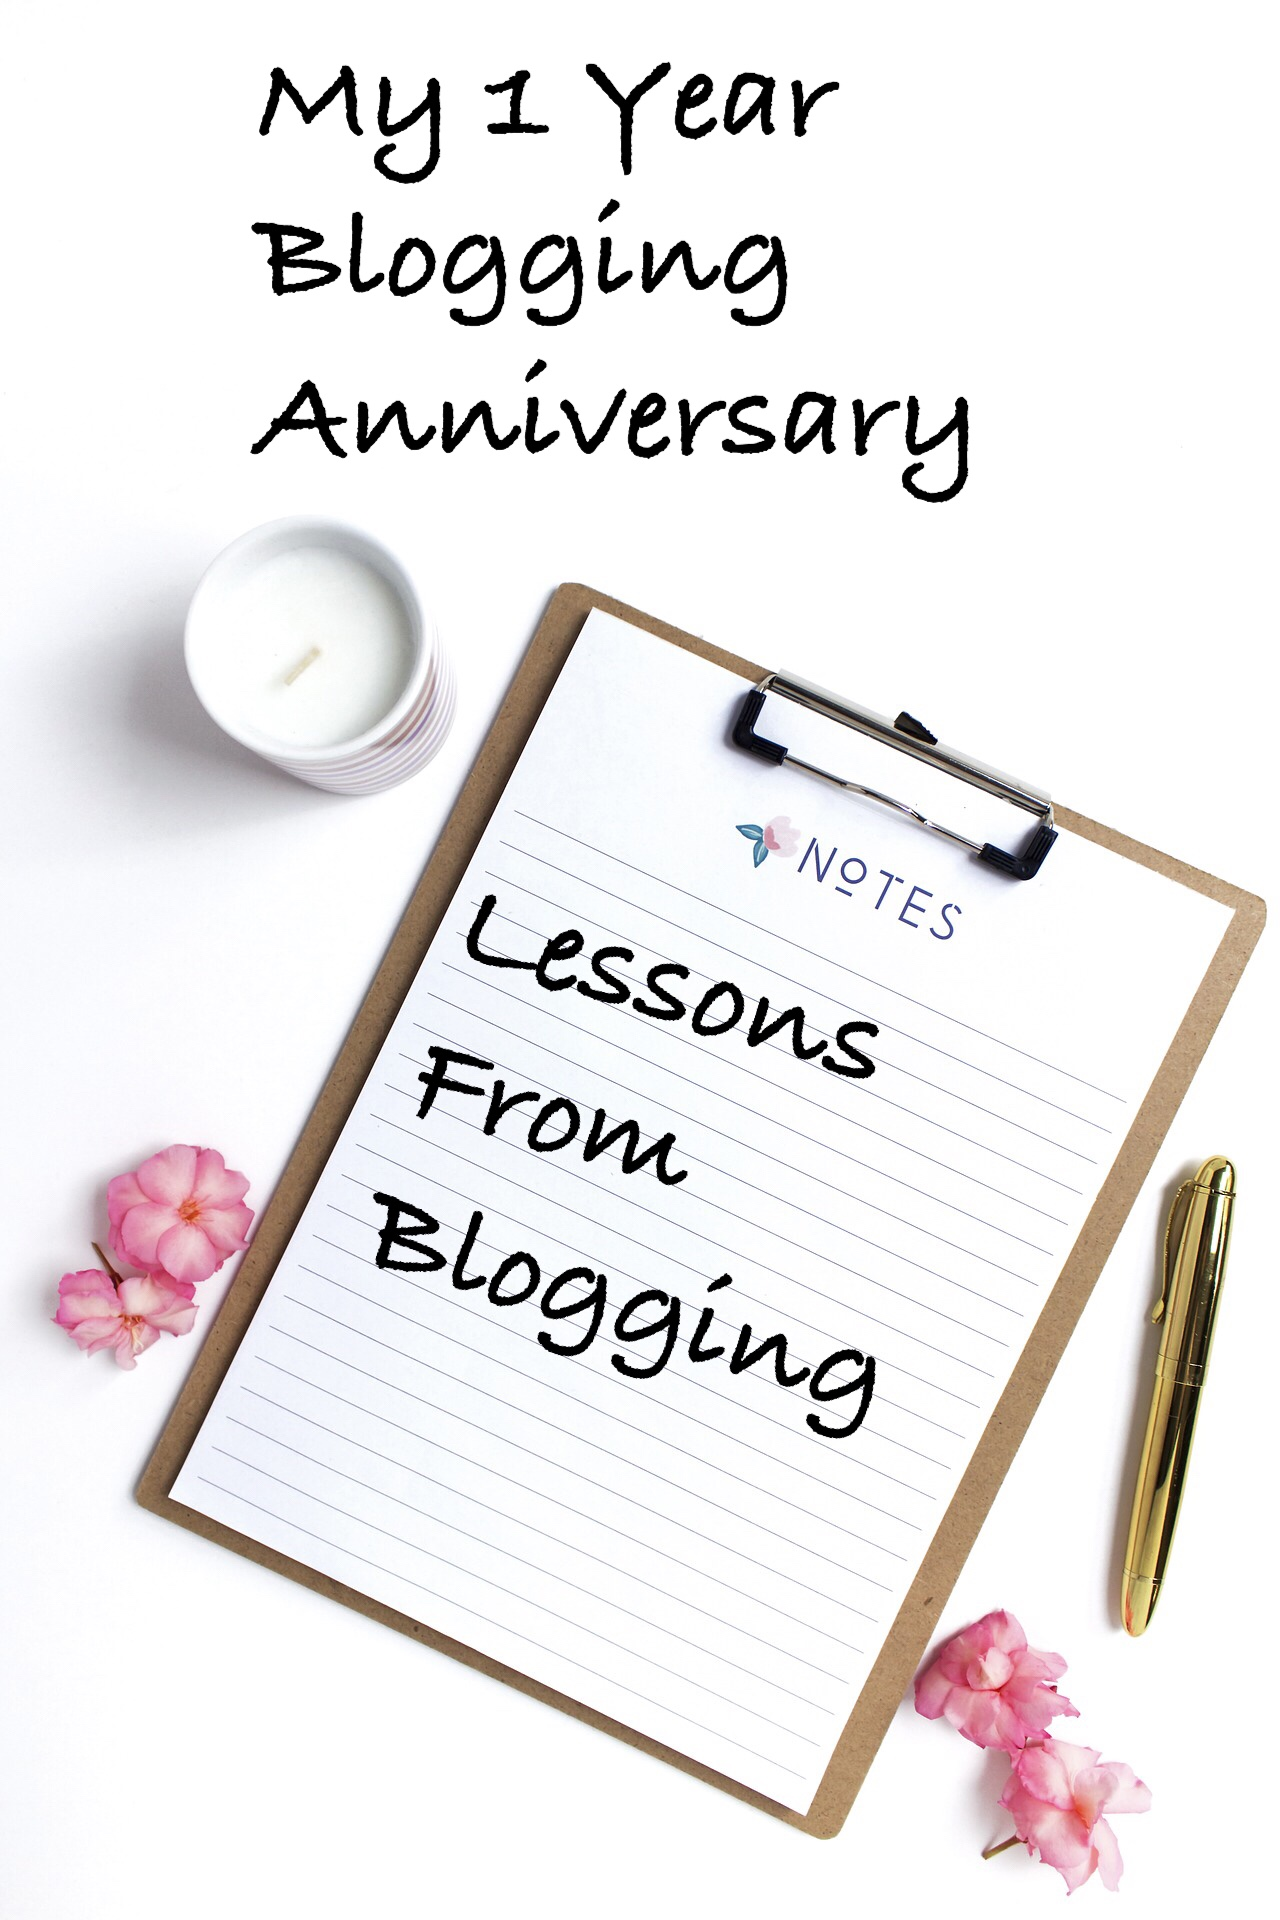 One year blogging anniversary pin